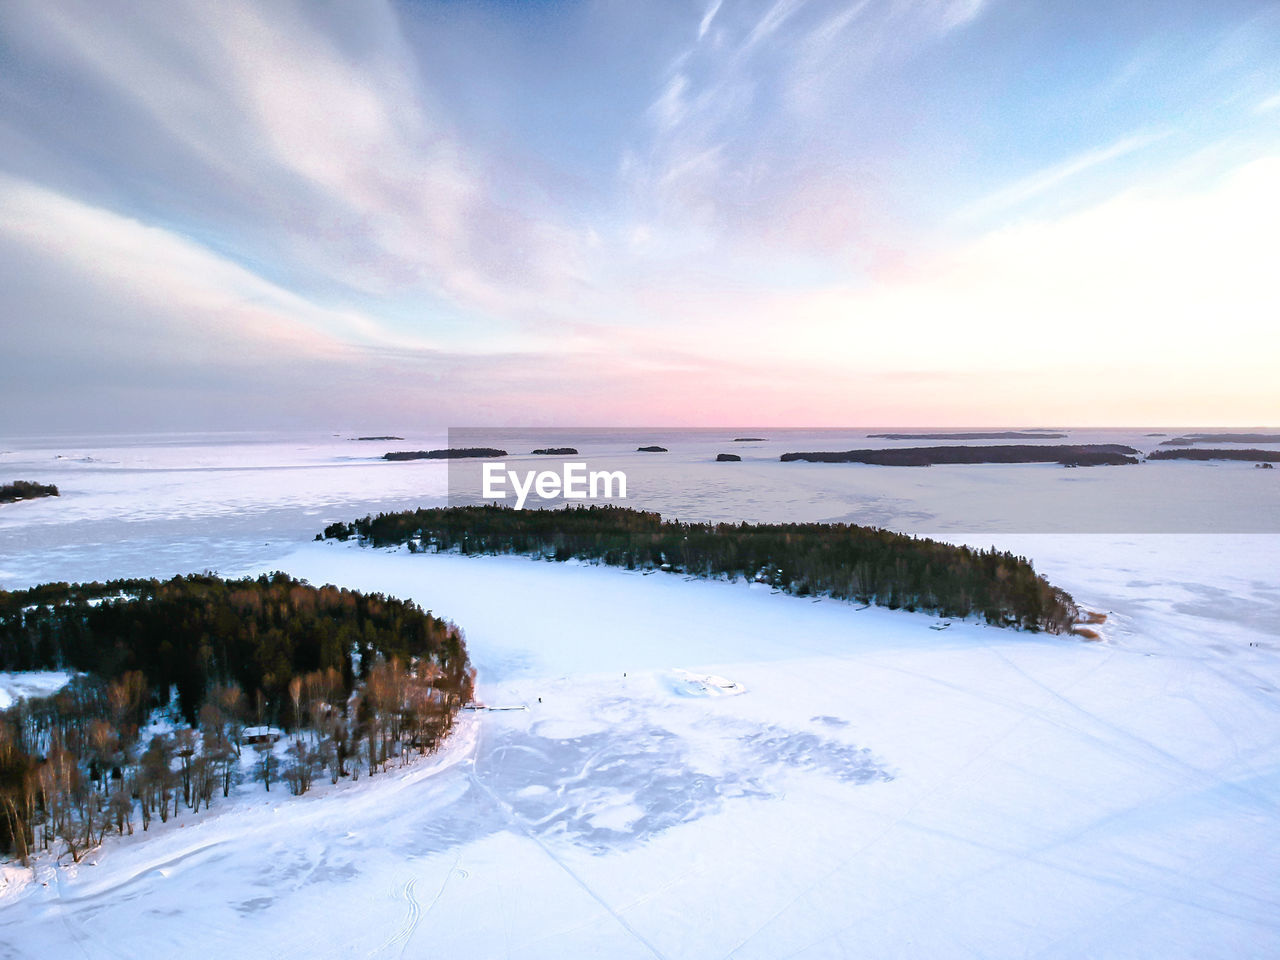 SCENIC VIEW OF FROZEN LAKE DURING SUNSET